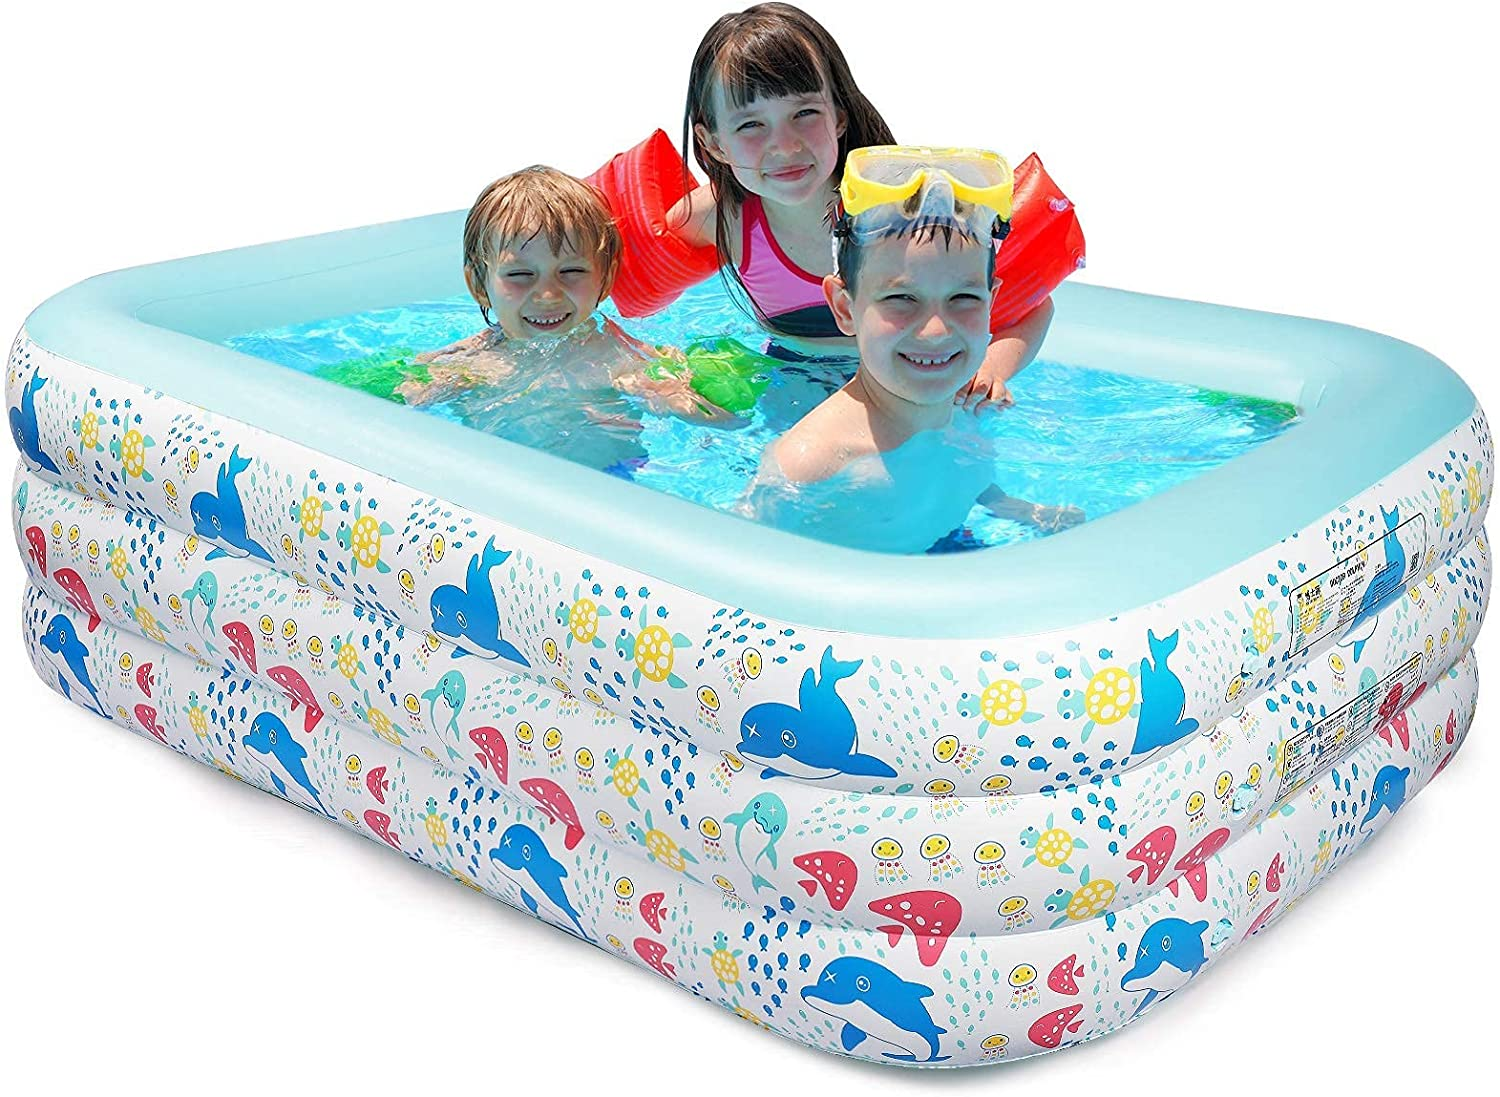 Inflatable Swimming Pool for Kids x 82